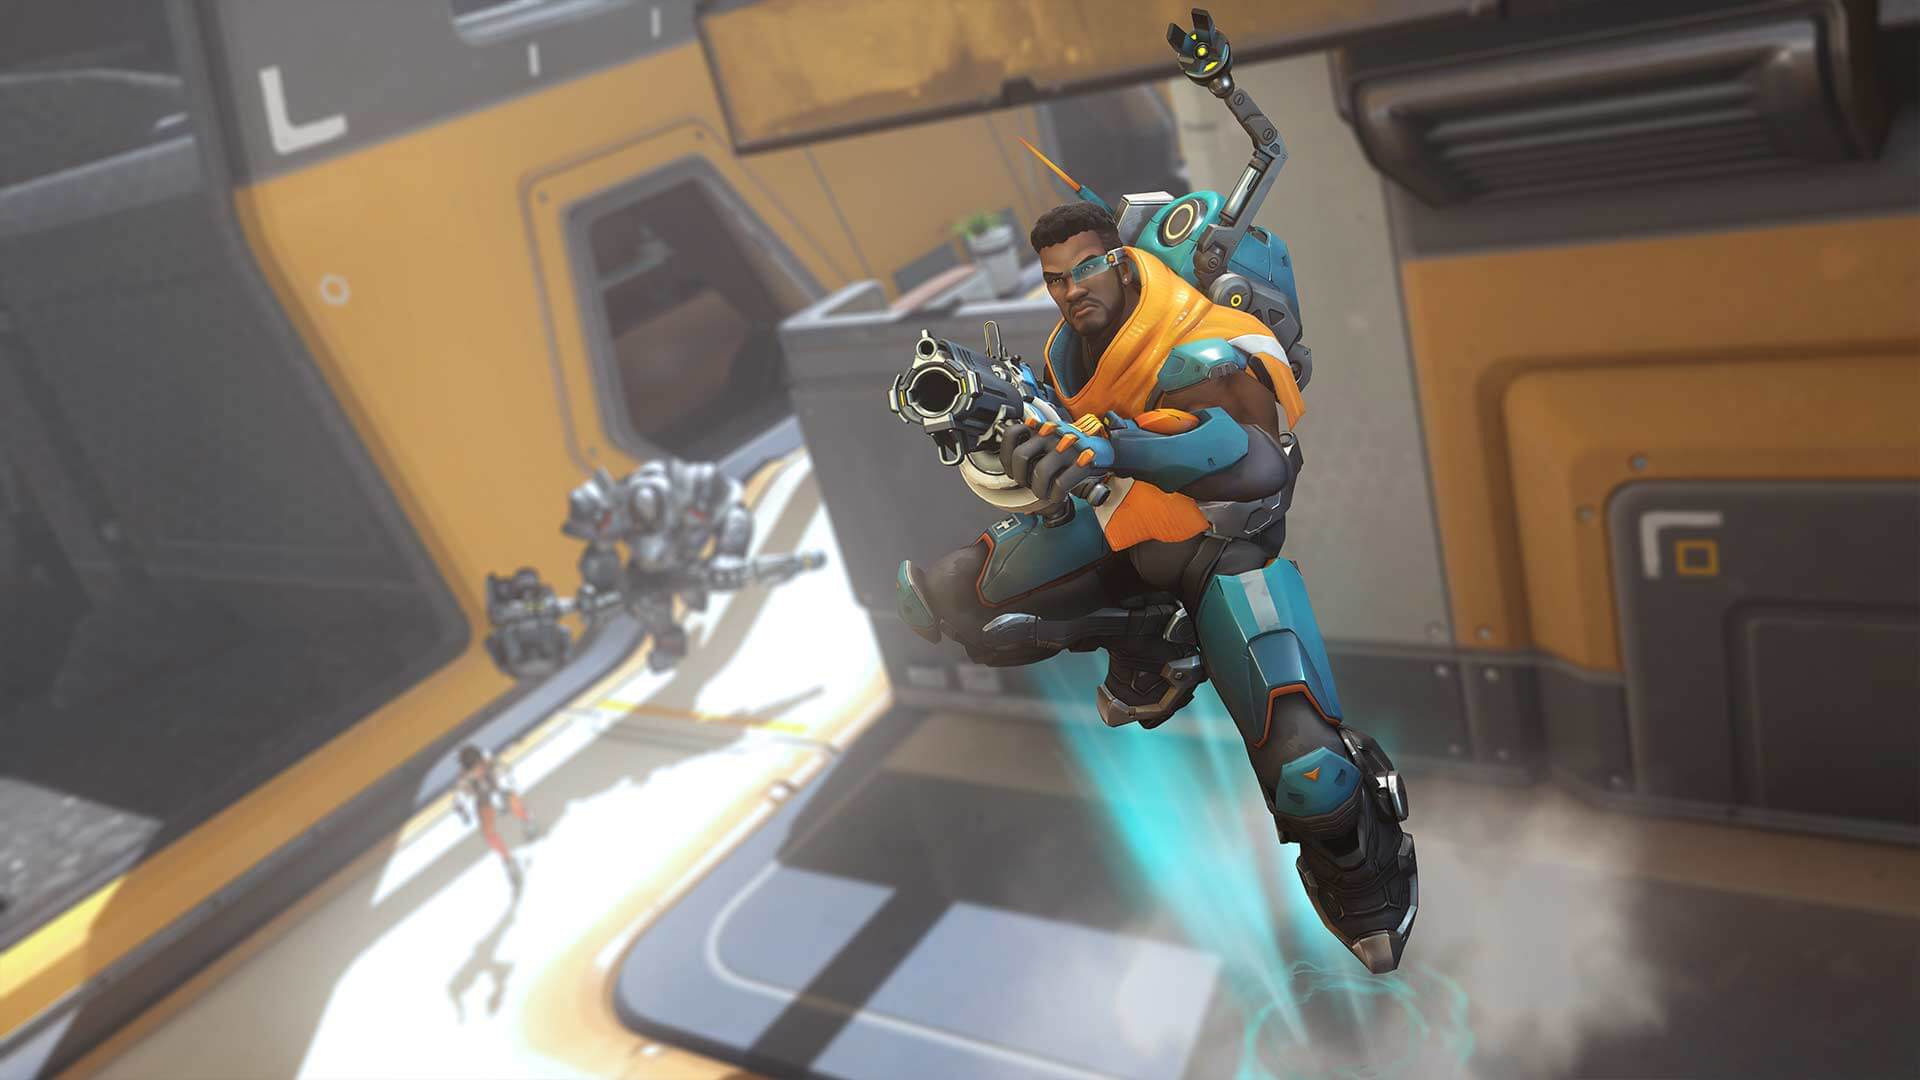 Baptiste is the newest Overwatch hero